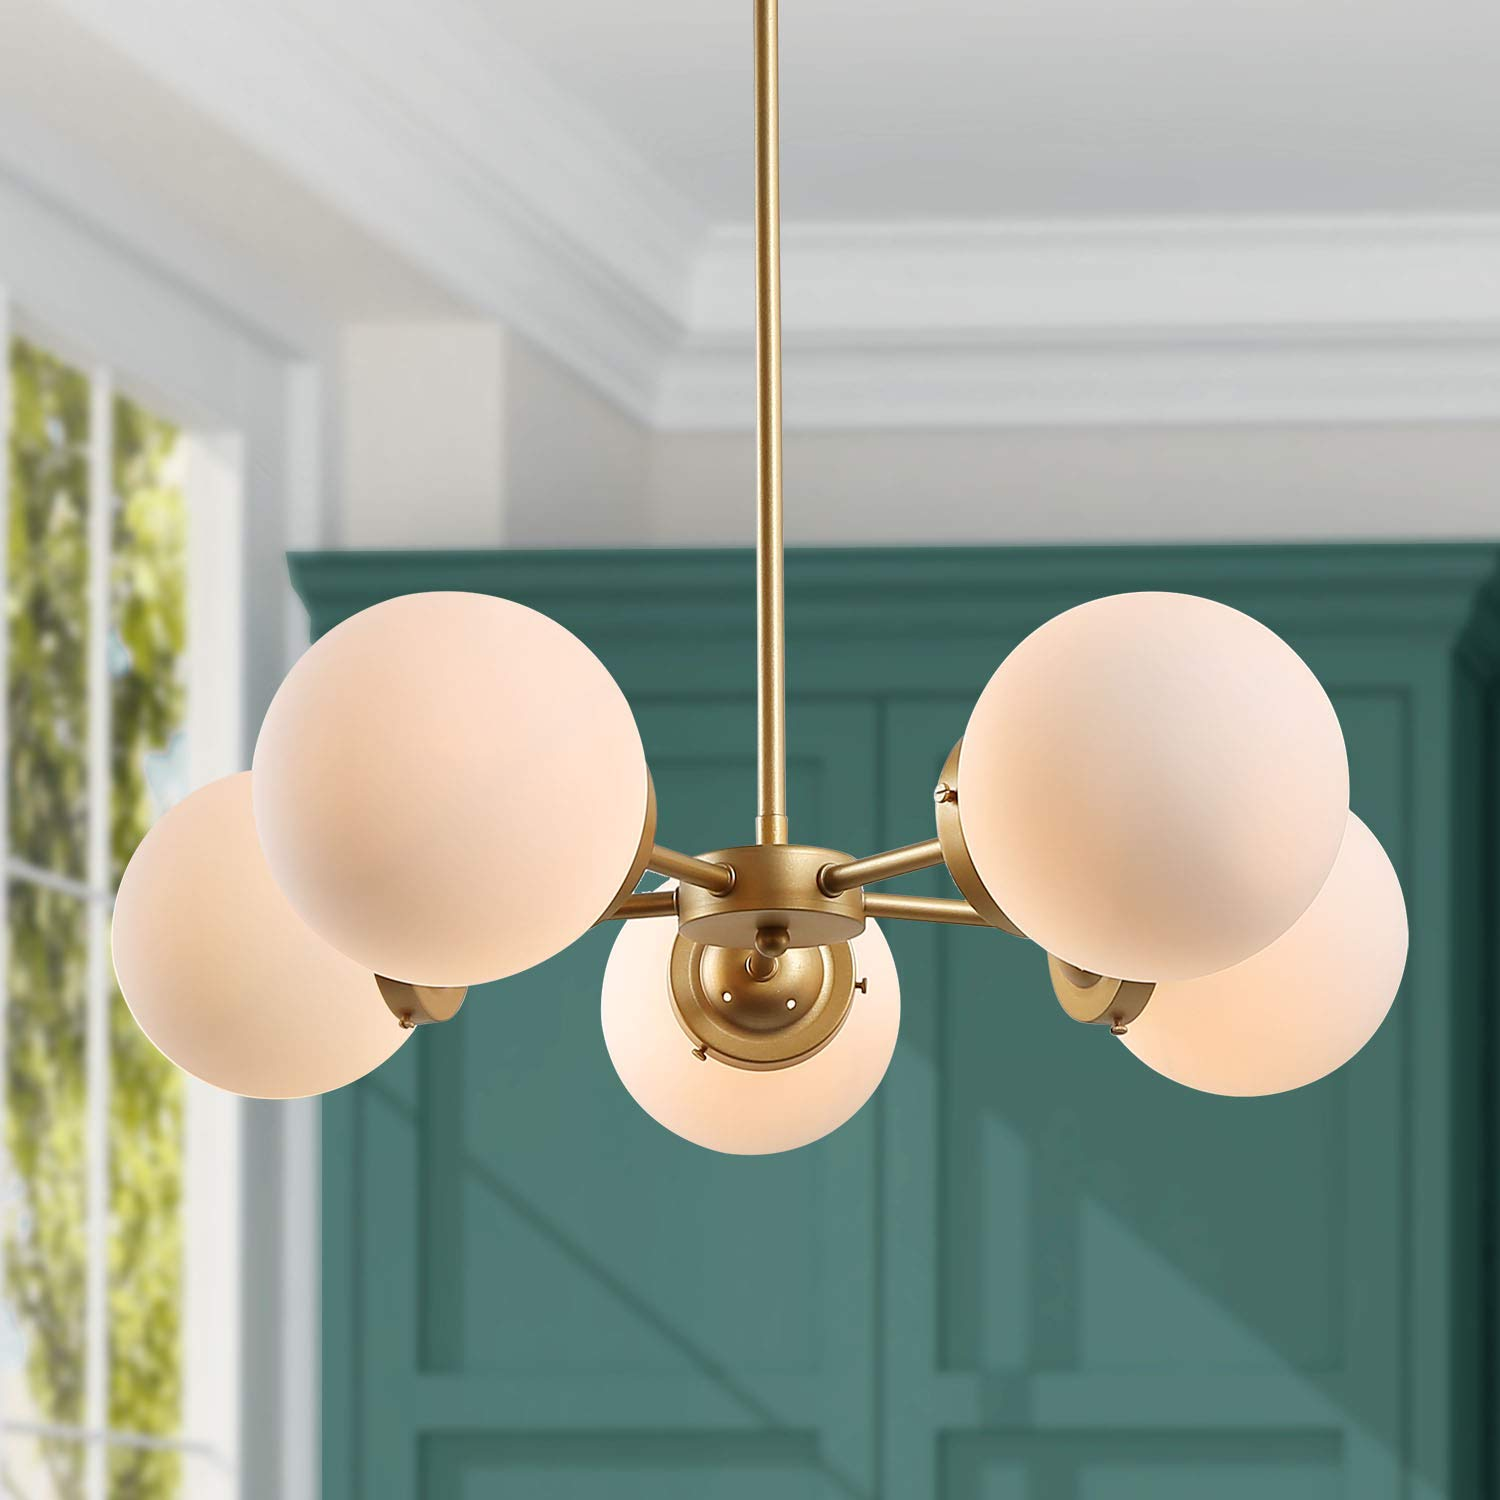 KSANA Gold Chandeliers for Dining Rooms, 5-Light Modern Globe Chandeliers with Frost White Glass Shades, Ceiling Pendant Lighting for Dining Rooms,Bedrooms, Living Room and Entryway